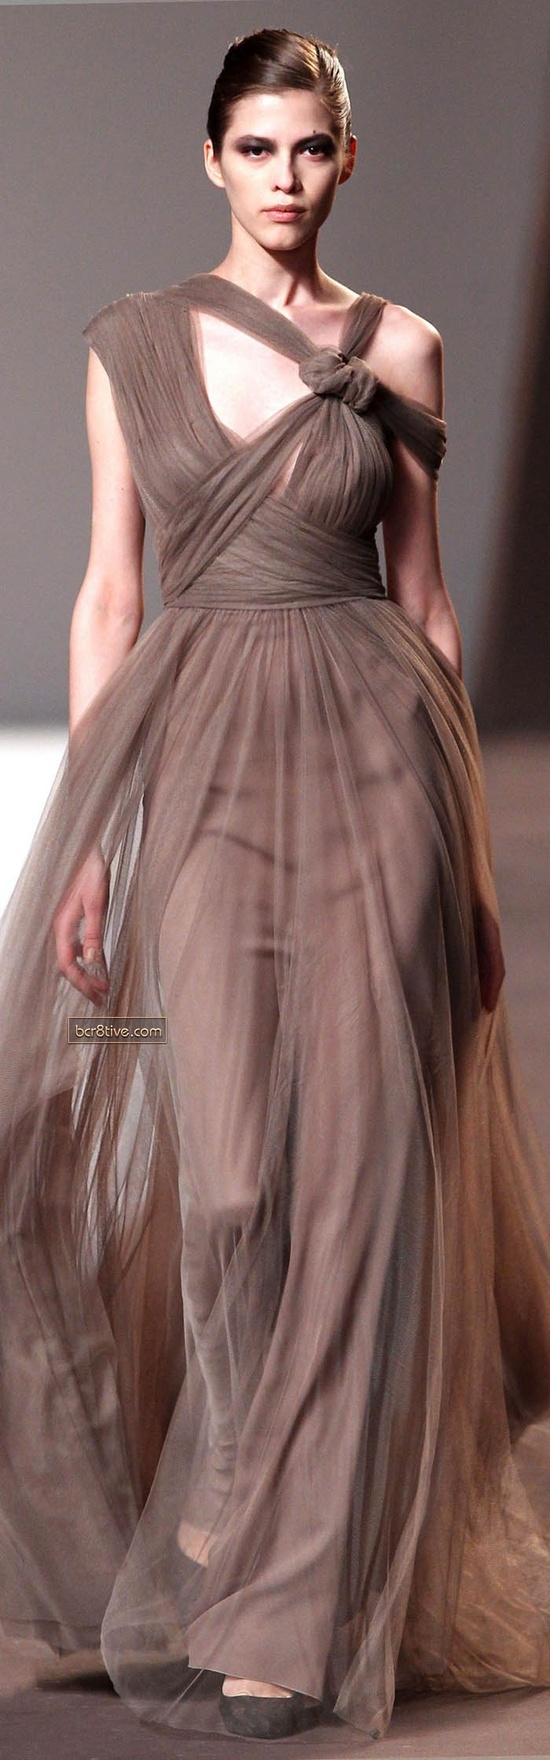 Here at Fleur we love long #gowns and #elegance. Do you notice any ...